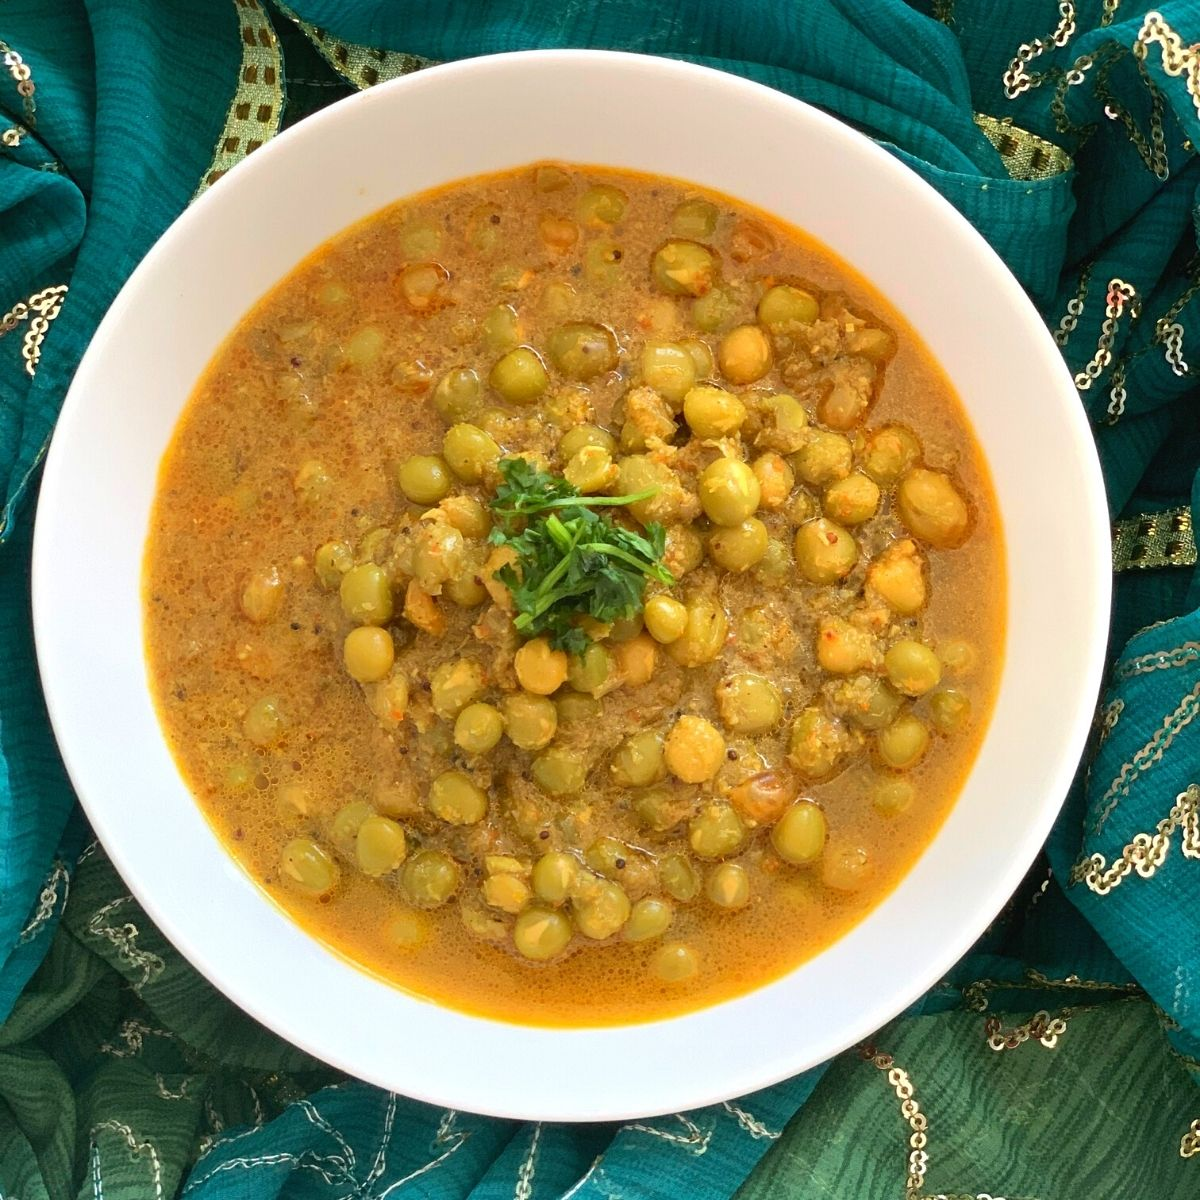 Goan Green Peas Curry served in a white bowl and garnished with coriander. A green stole is seen in the background